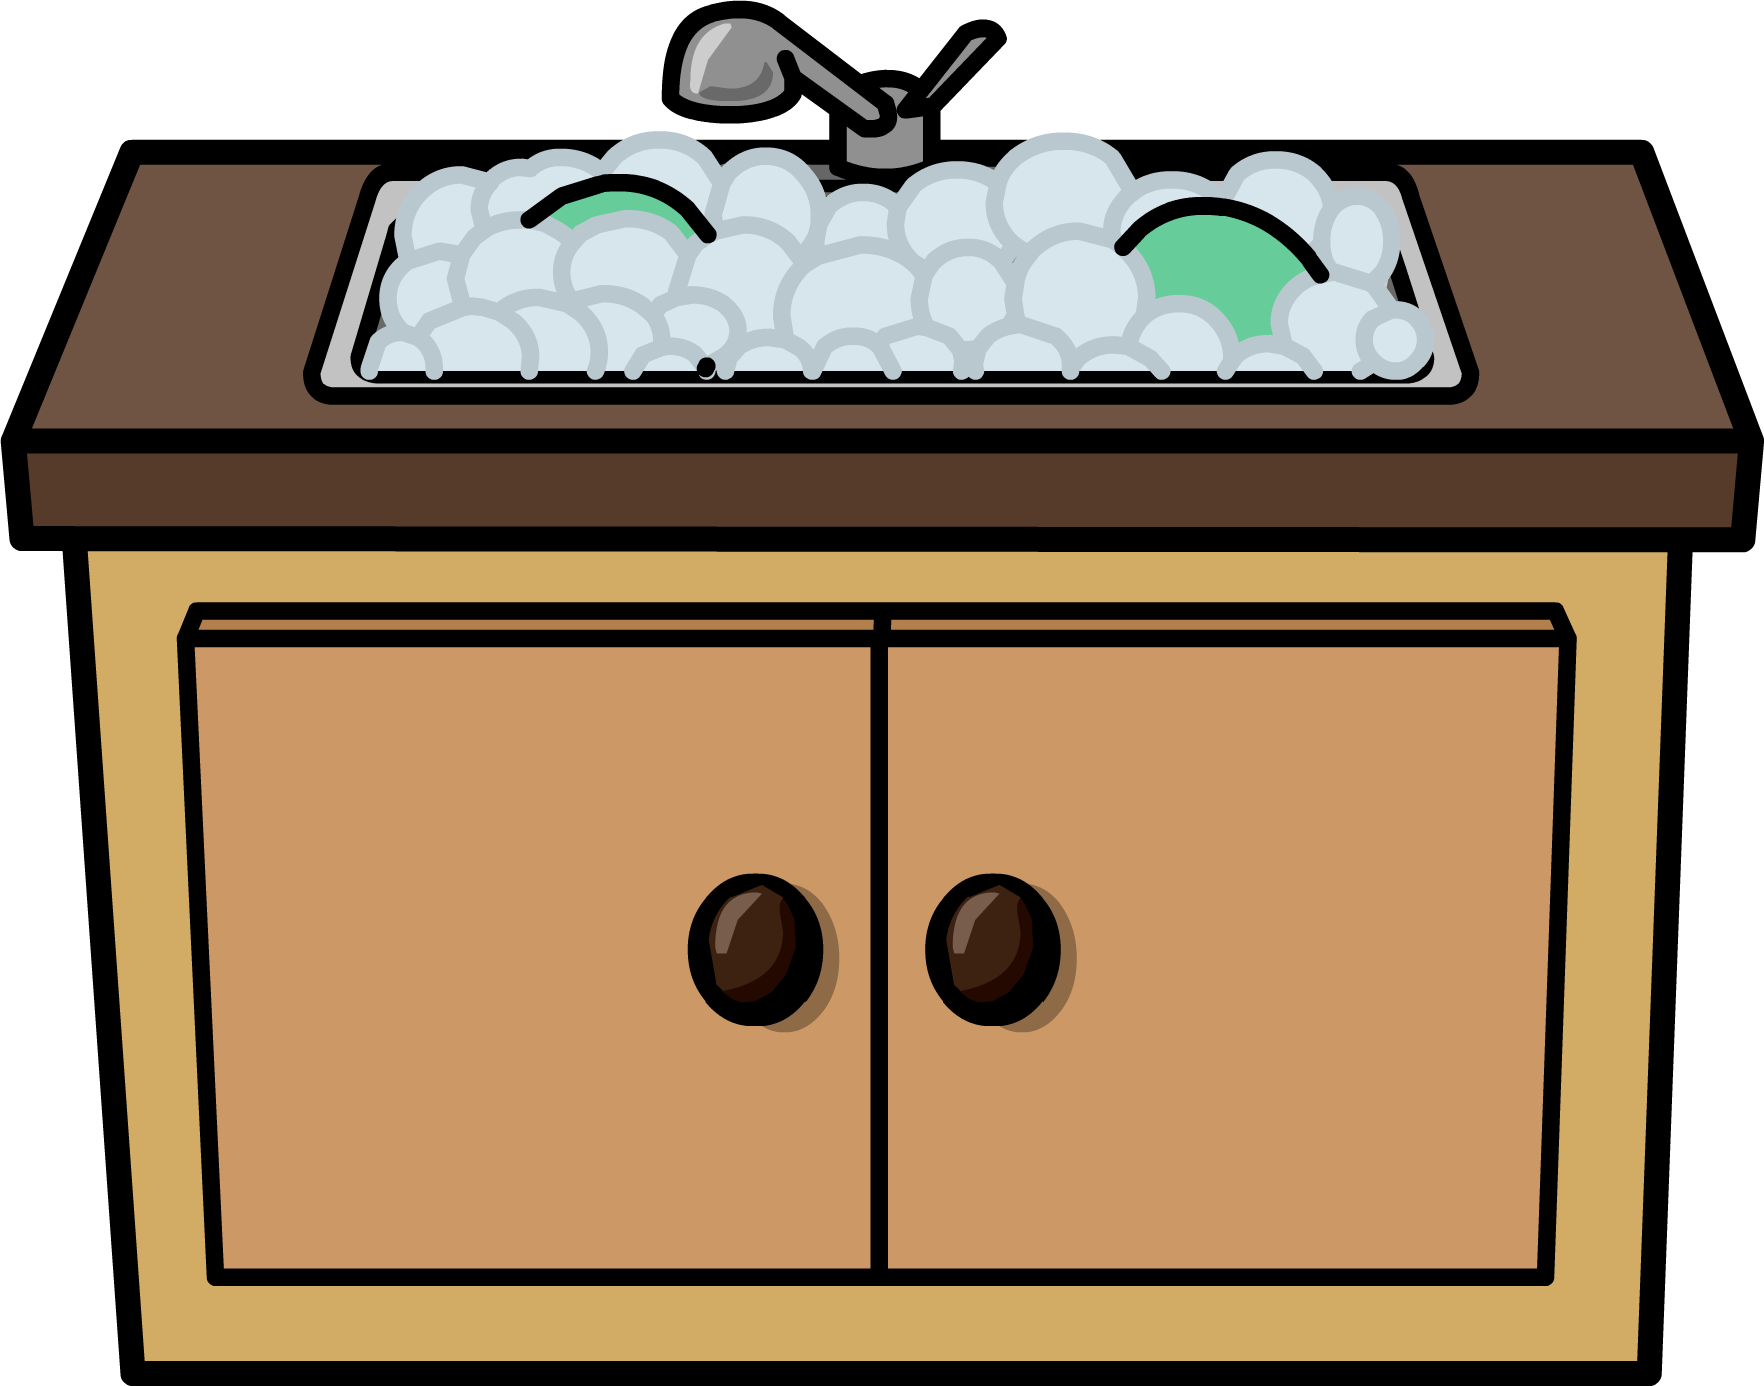 svg free Kitchen sink clipart. Image sprite png club